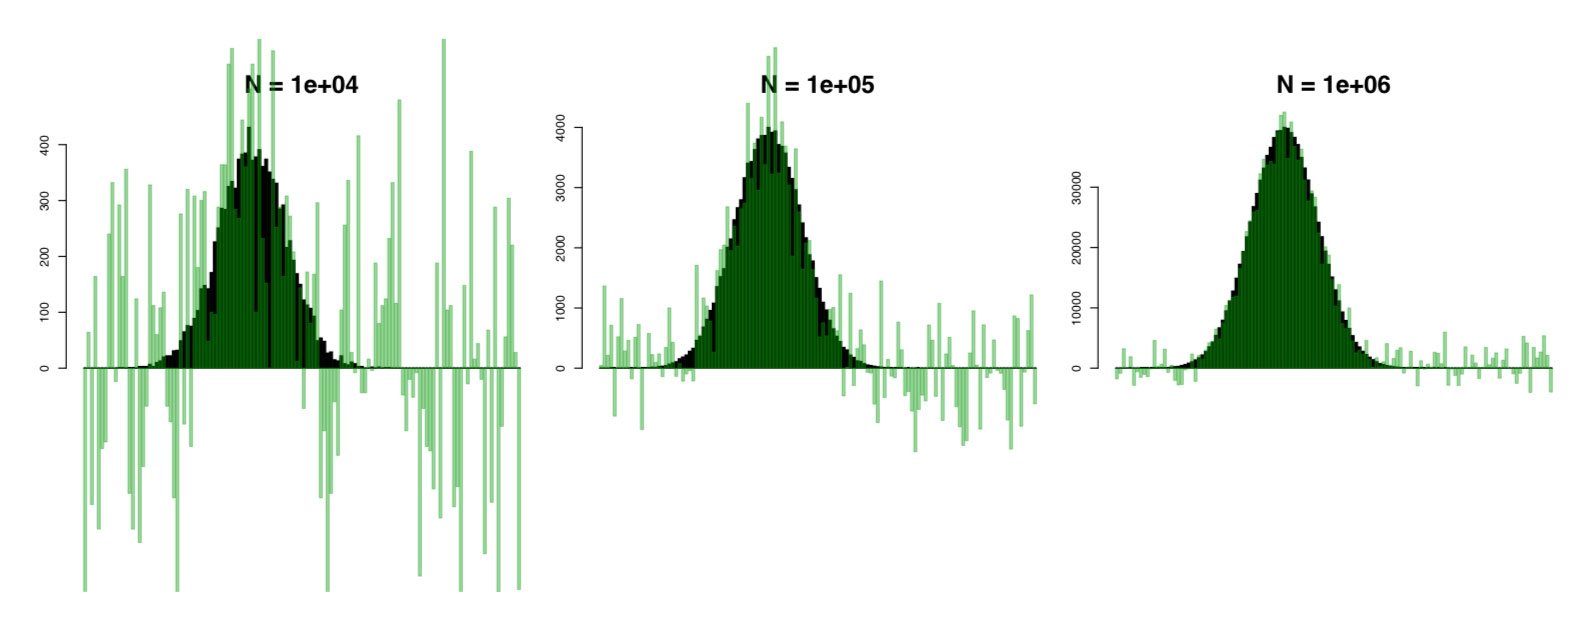 Random noise obscures individual data gathered with Google's Rappor project. The more participants in a study, the closer more closely the Rappor responses (light green) match the original values (dark green).